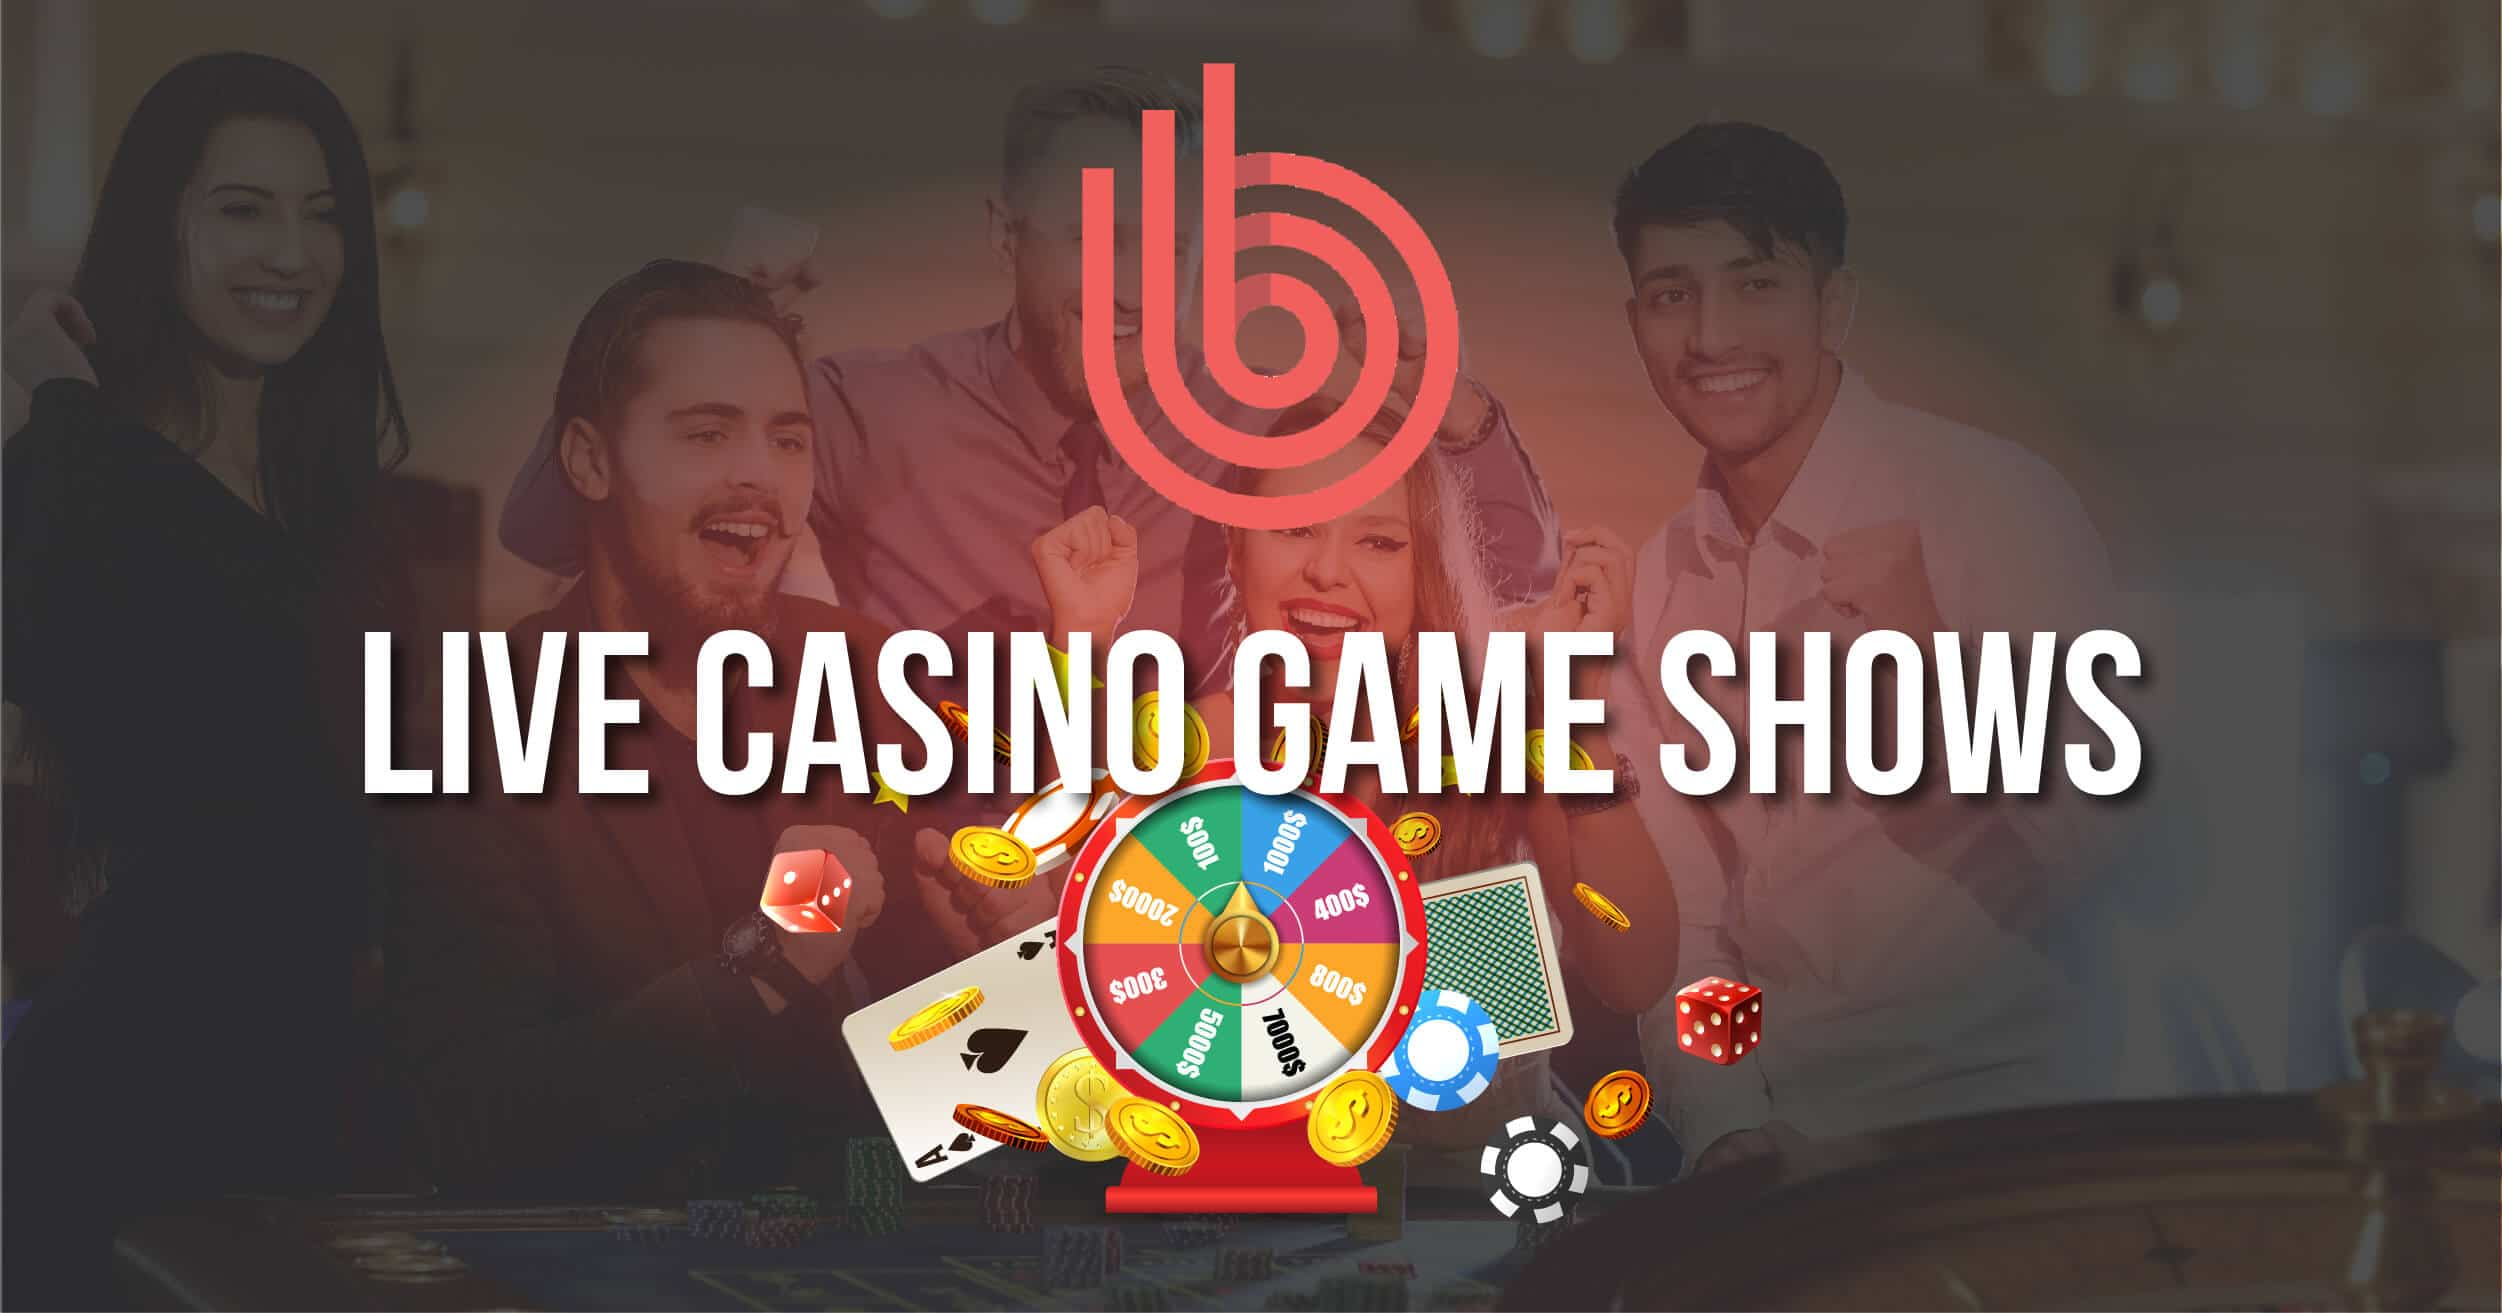 Live Casino Game Shows Featured